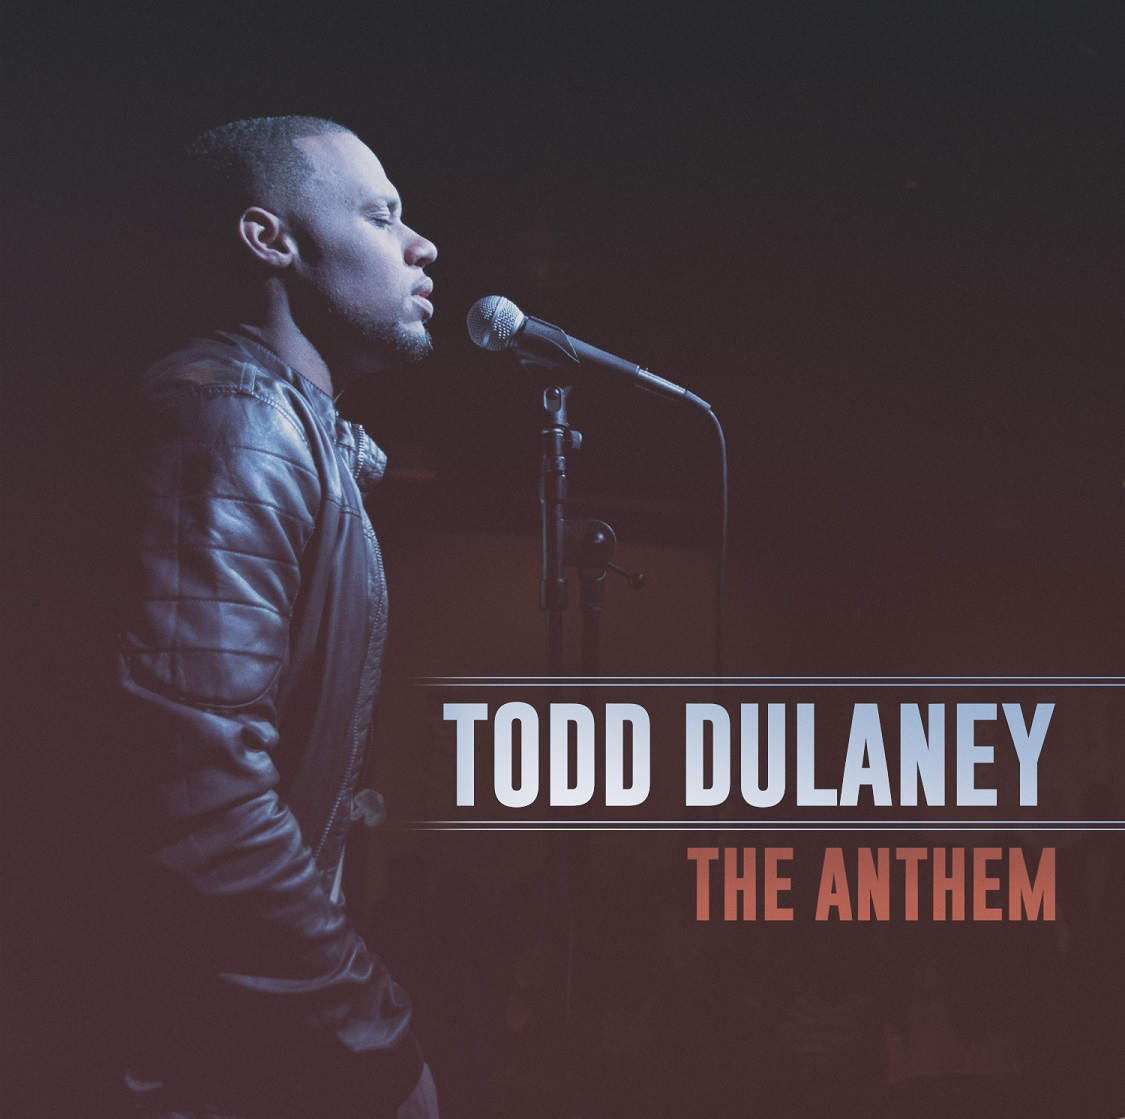 New album from Todd Dulaney available now